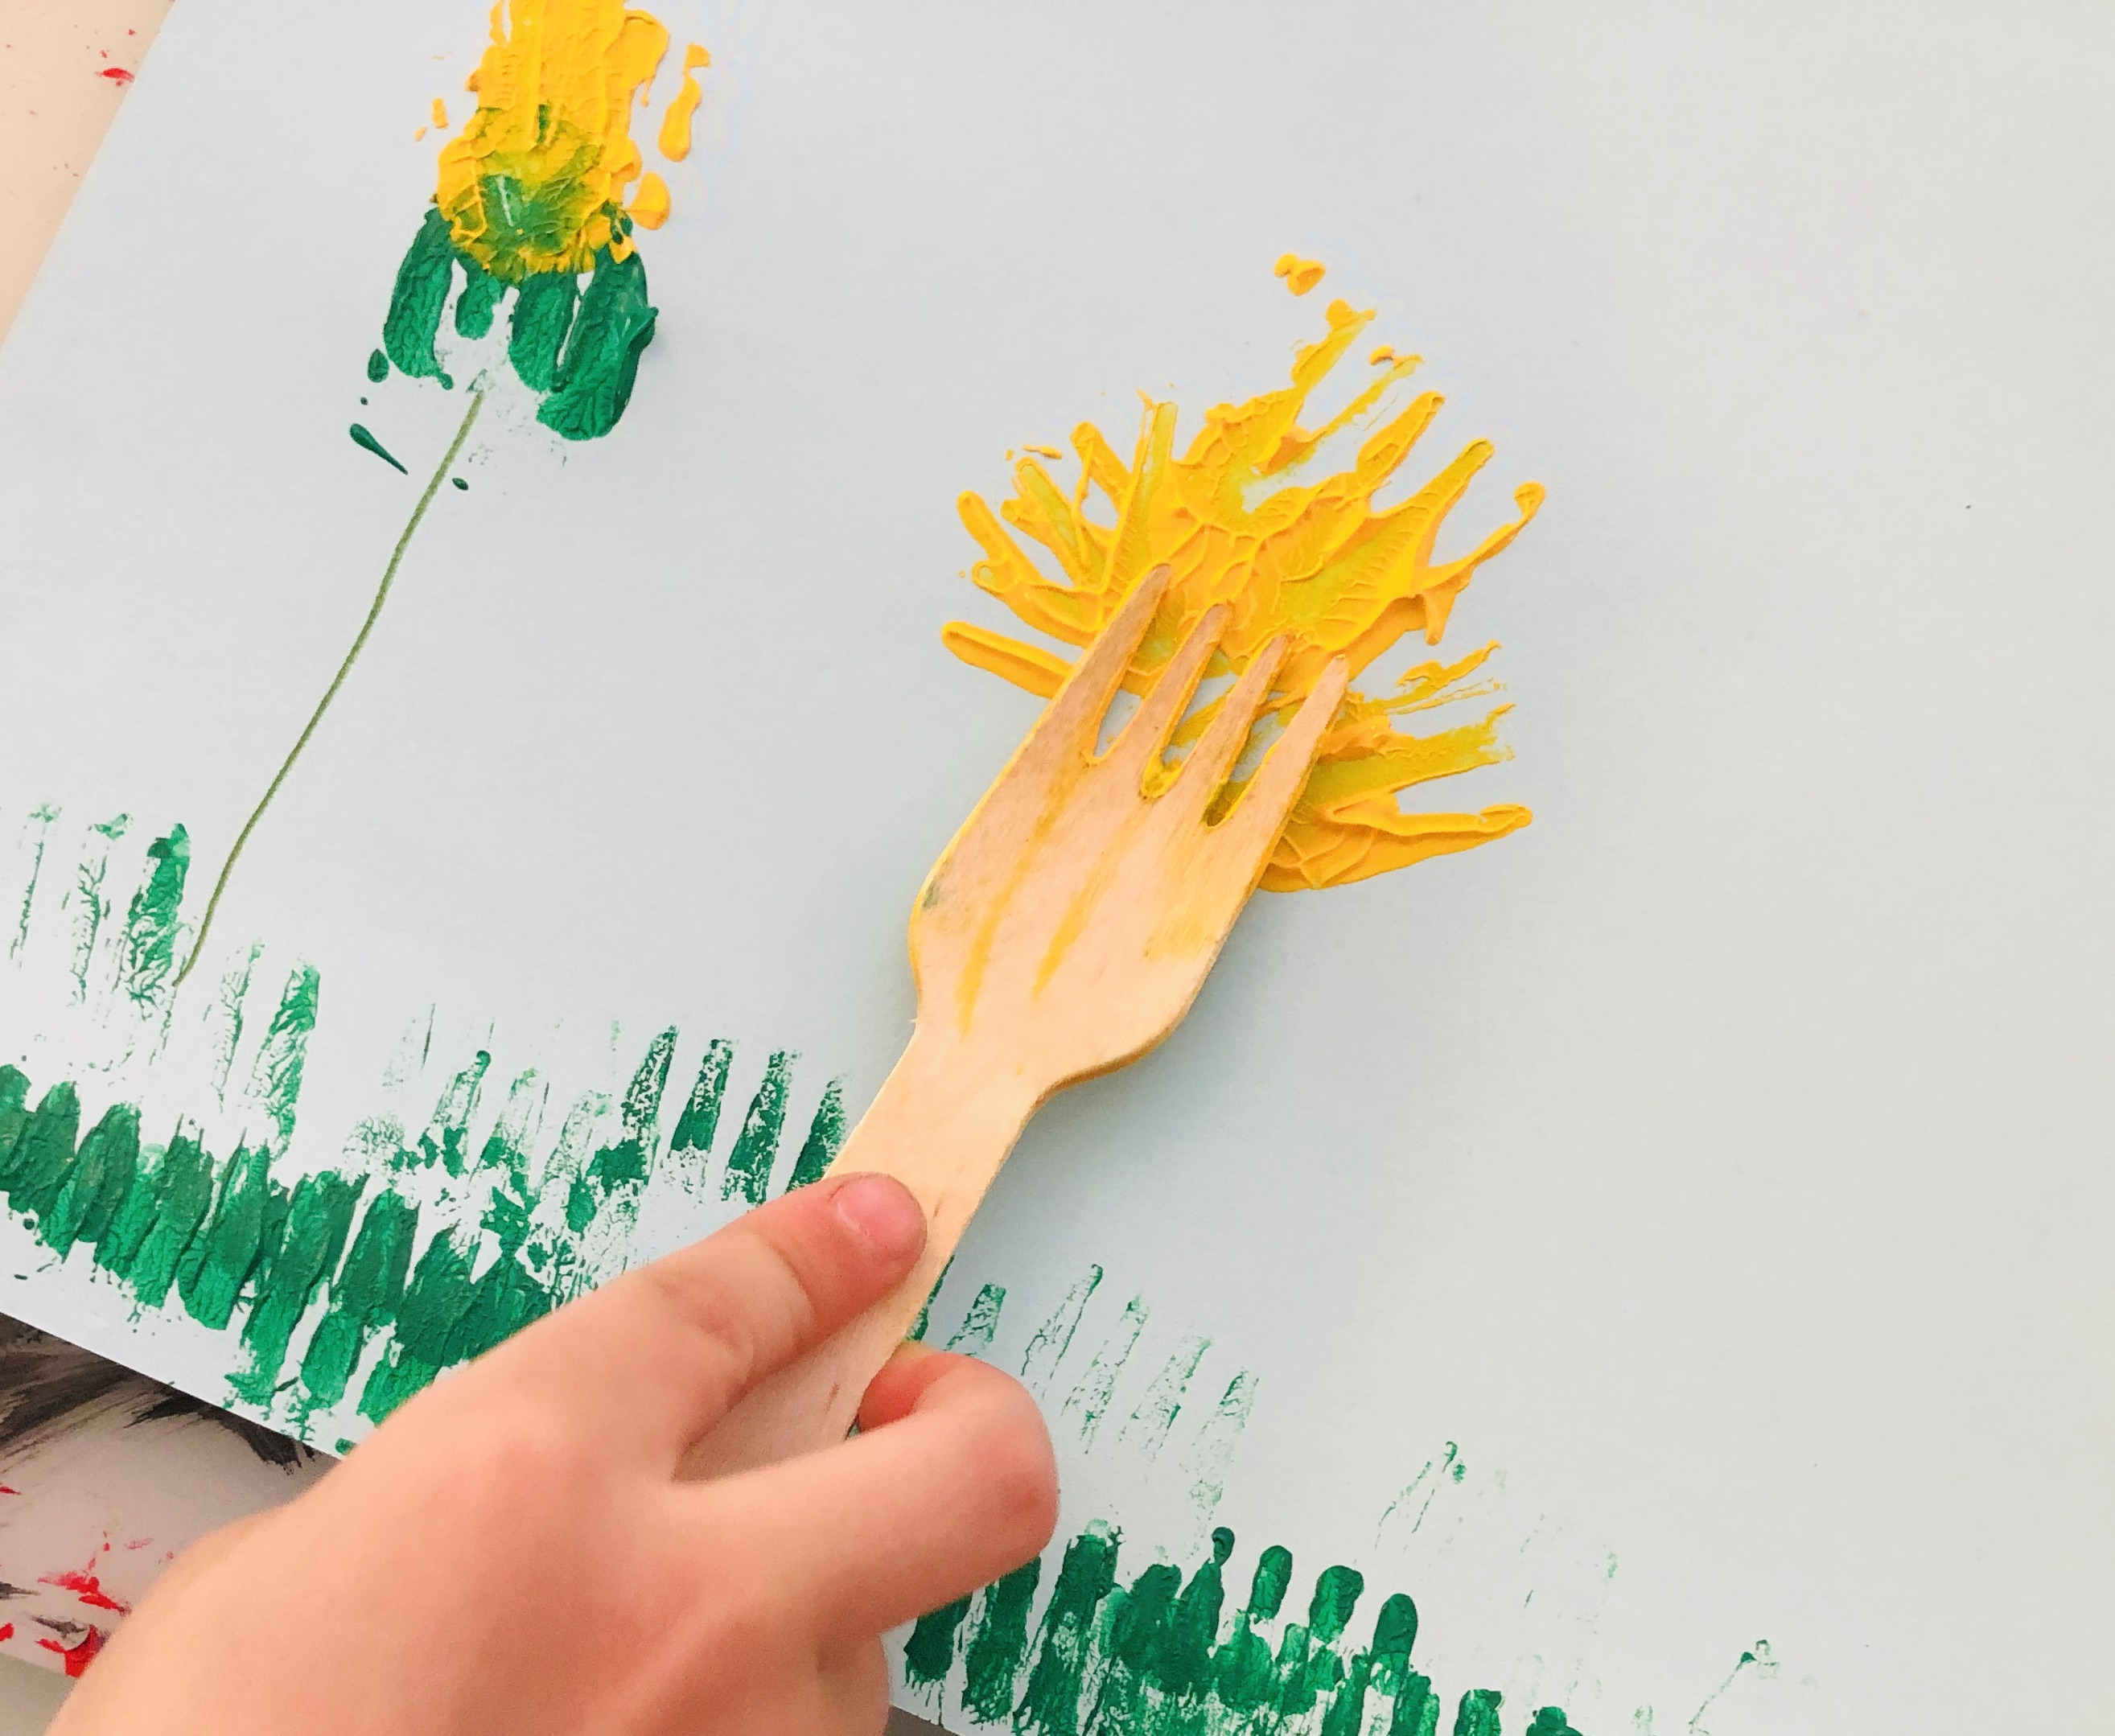 kid drawing stage 3 of dandelion´s life cycle